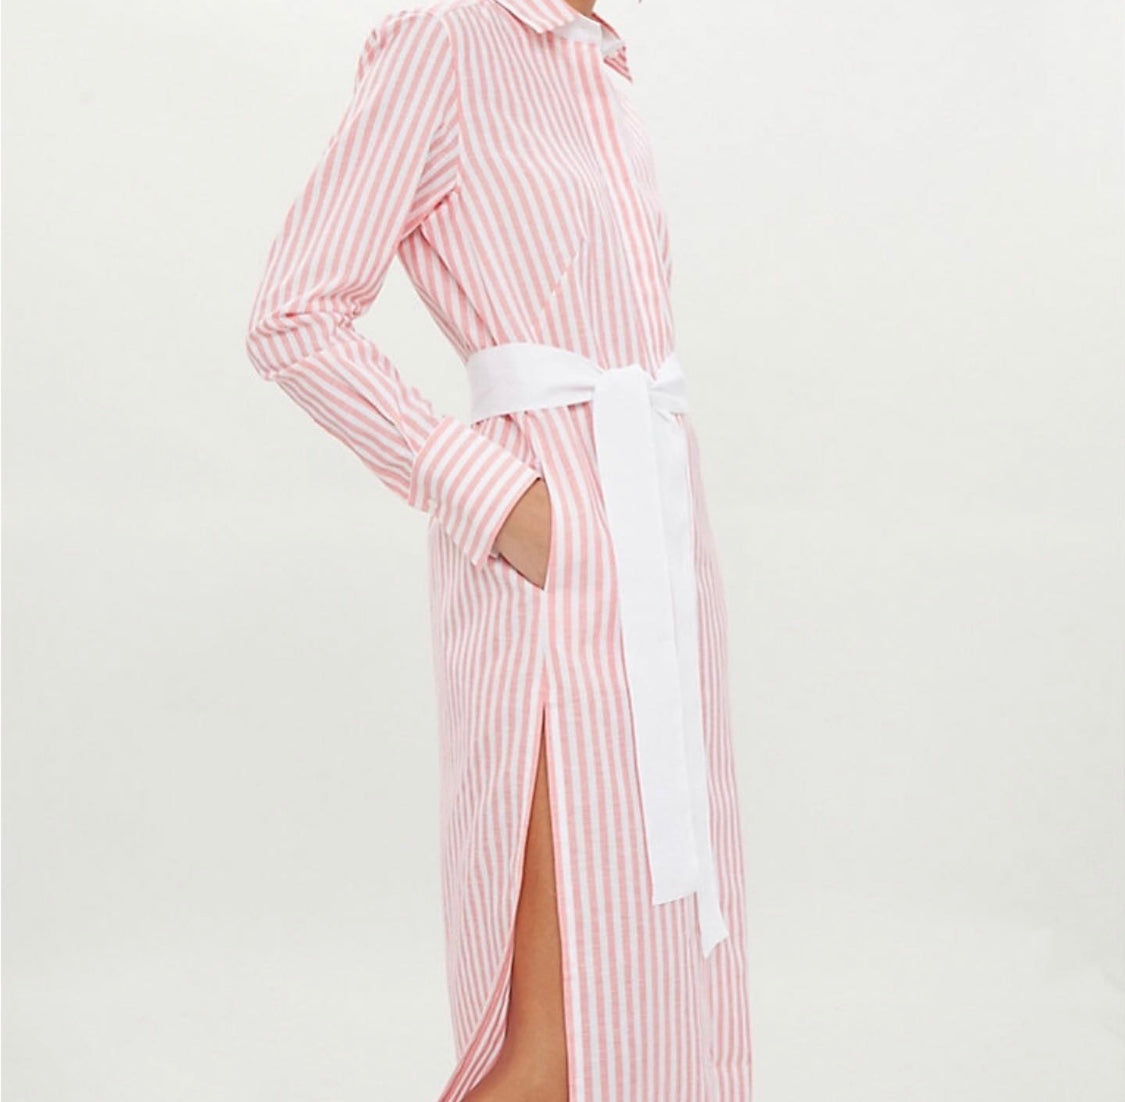 Vanessa Long Shirt Dress Cotton Linen Coral Stripe